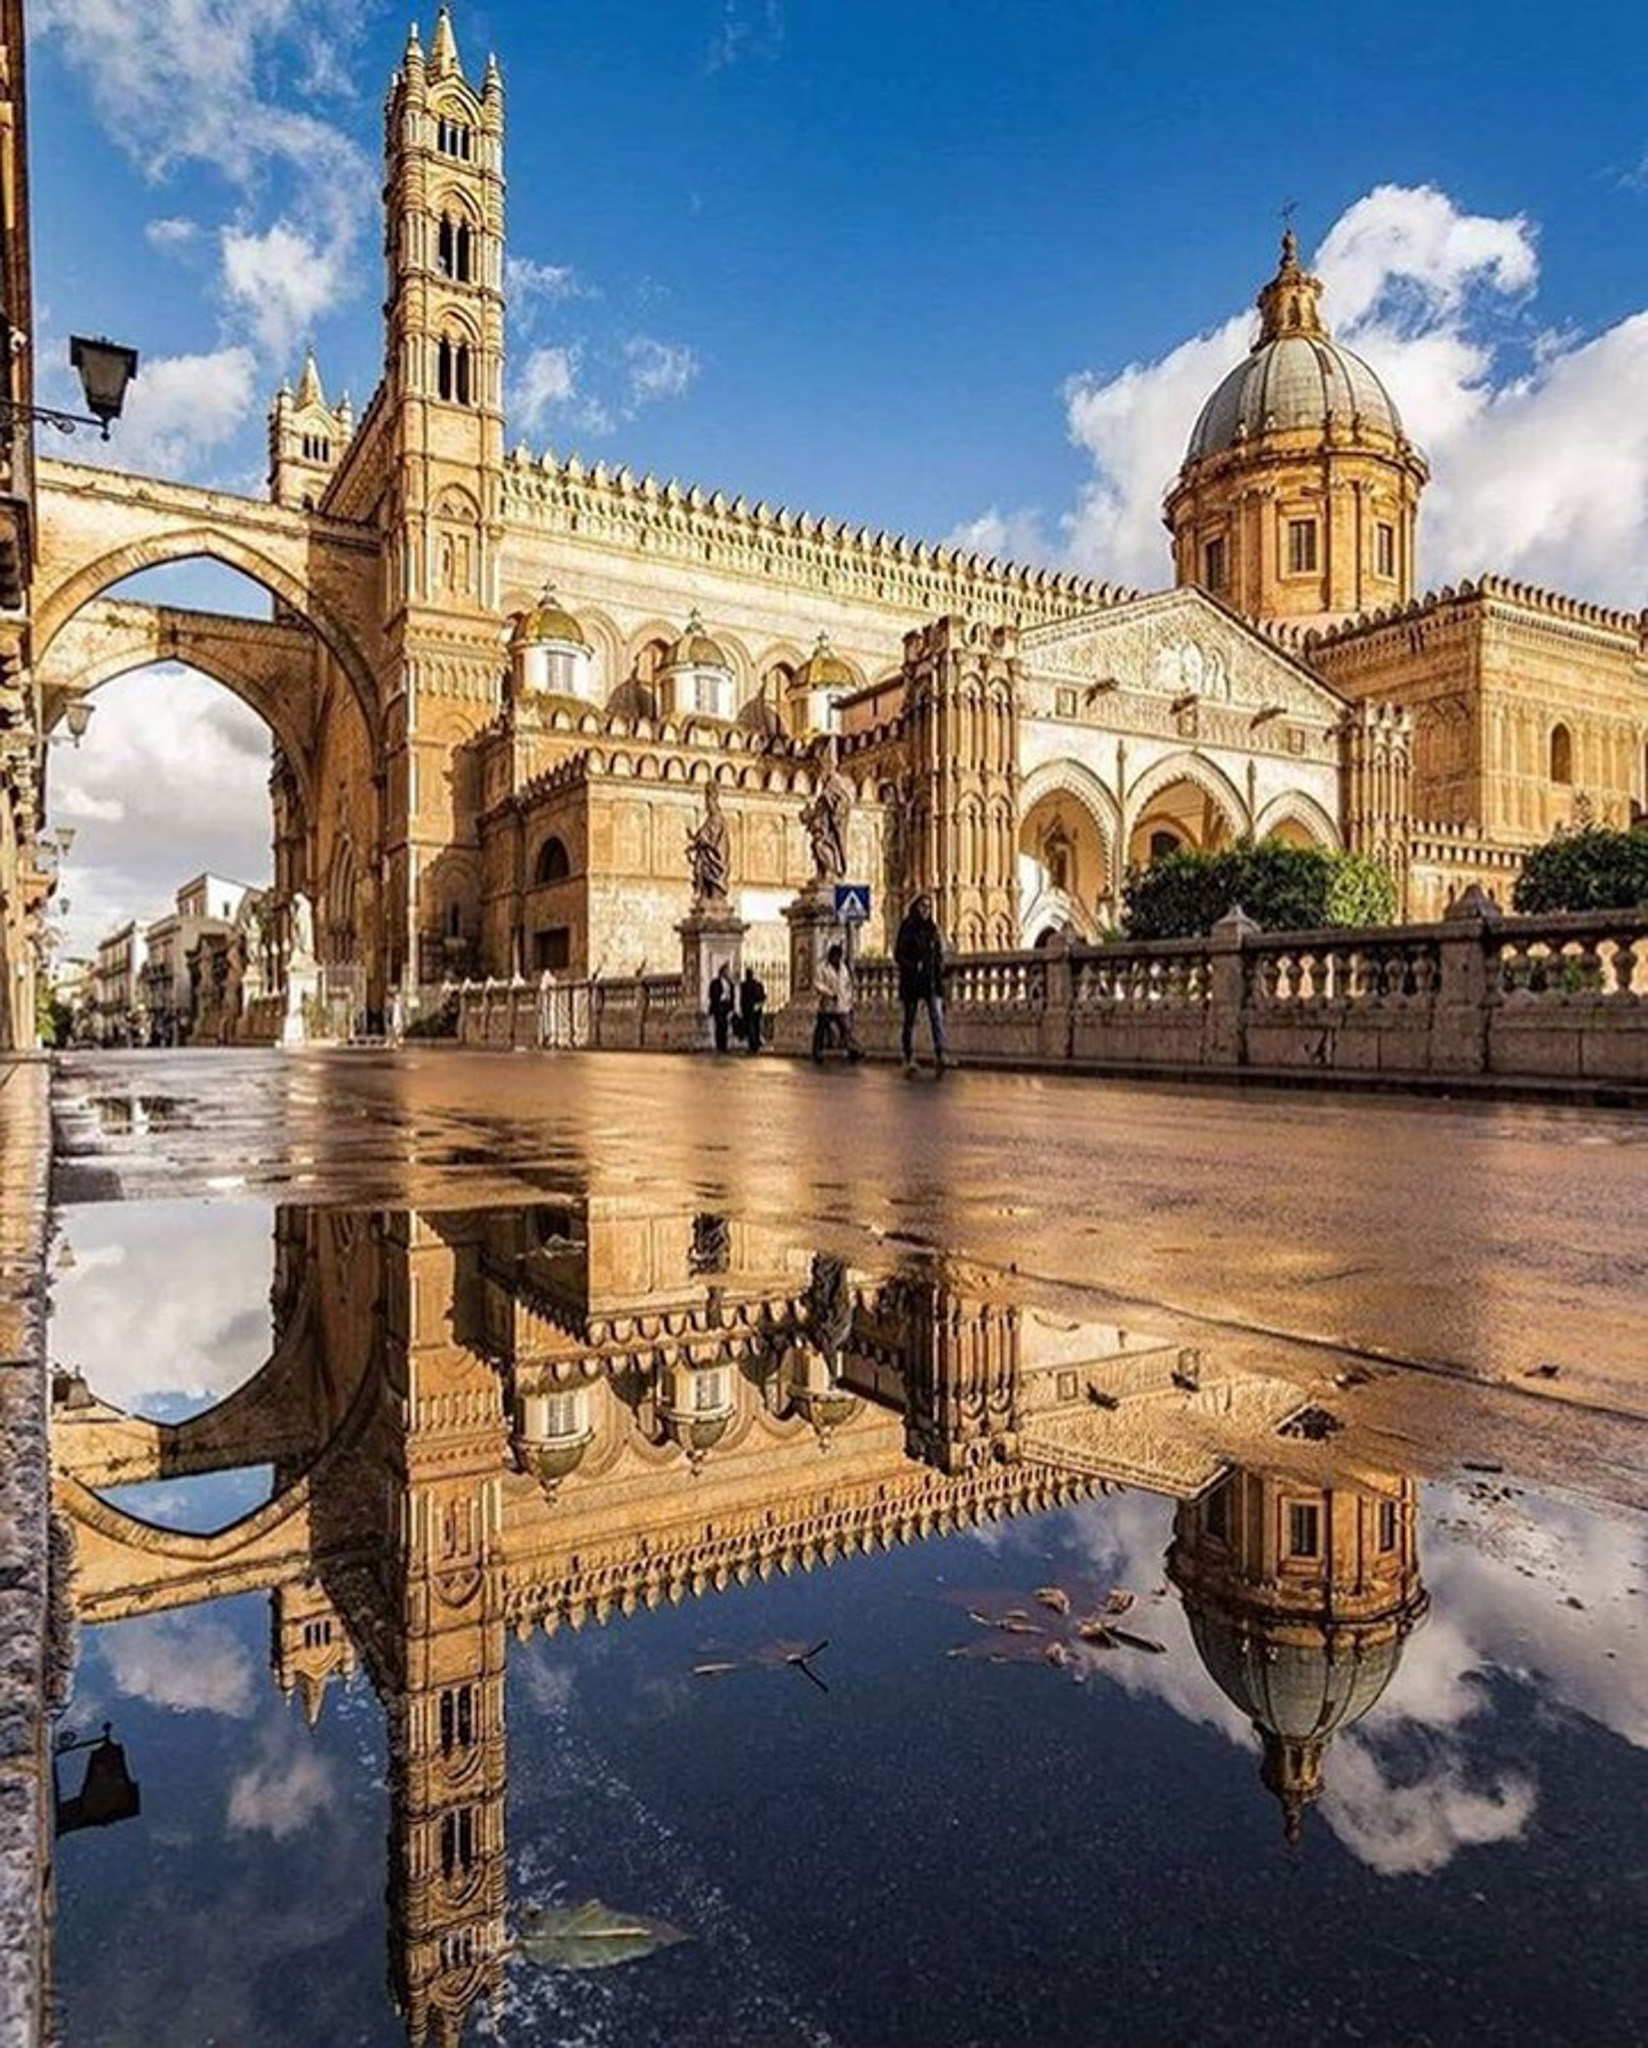 Cattedrale di Palermo, Palermo Palermo Italy - Building, City, Cloud, Daytime, Nature, Public space, Sky, Water, Watercourse, World